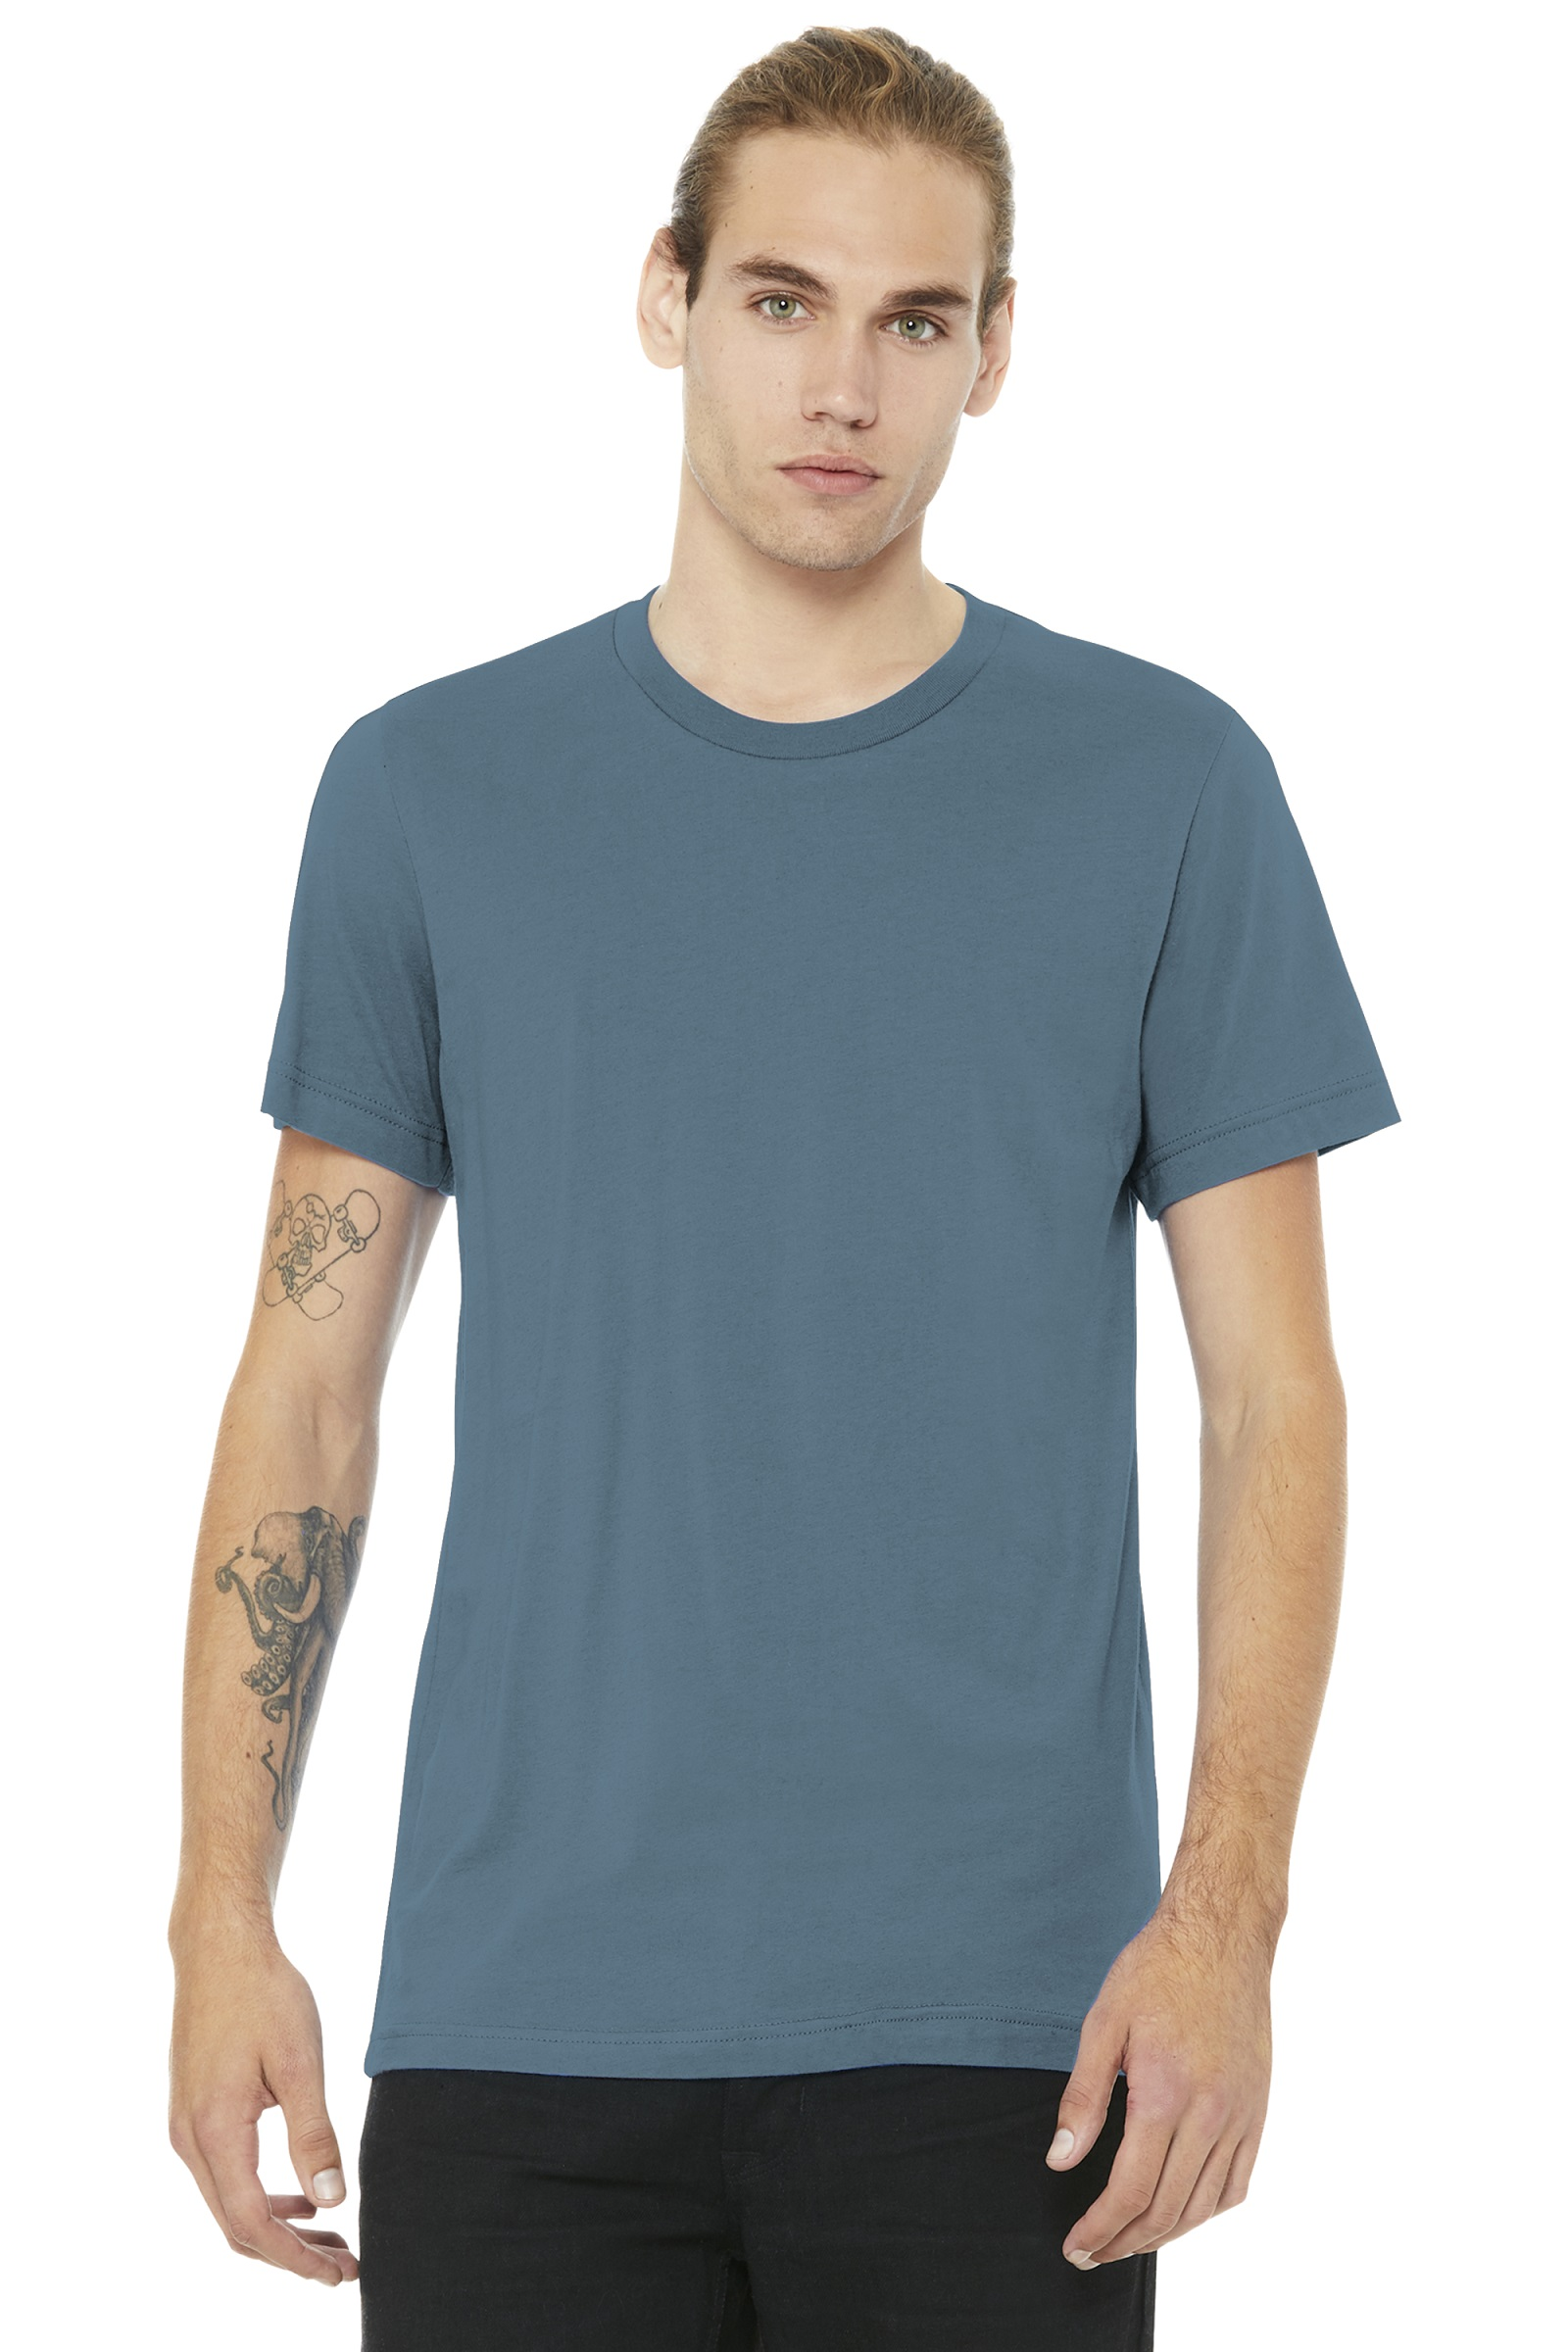 Bella + Canvas Embroidered Men's Ringspun Cotton T-Shirt